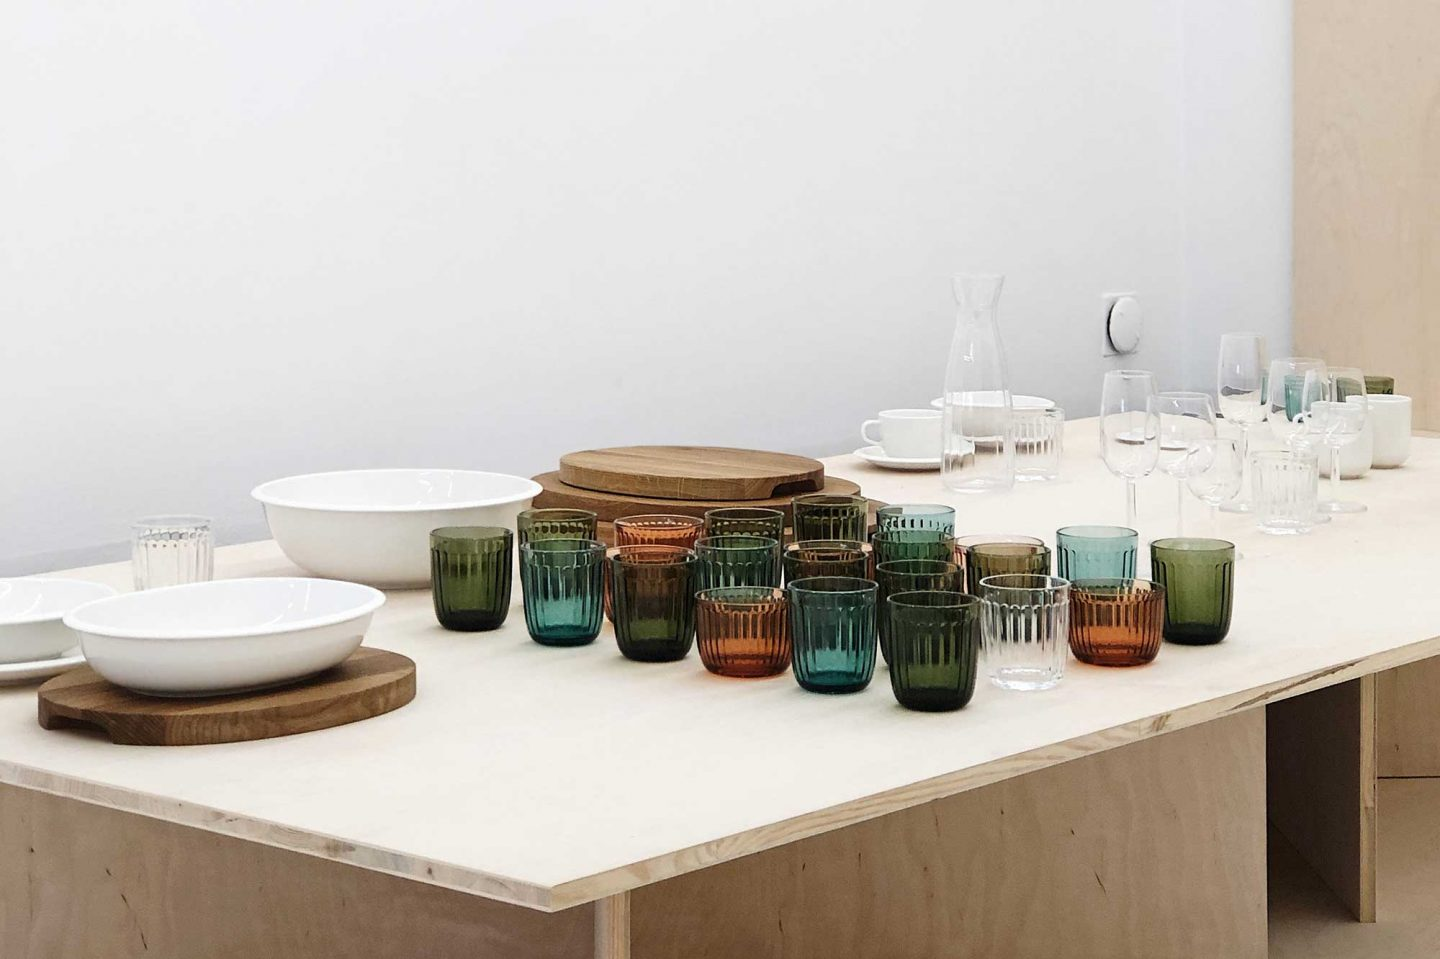 Highlights from Stockholm Design Week, Swedish design, Finnish design, Iittala, Jasper Morrison